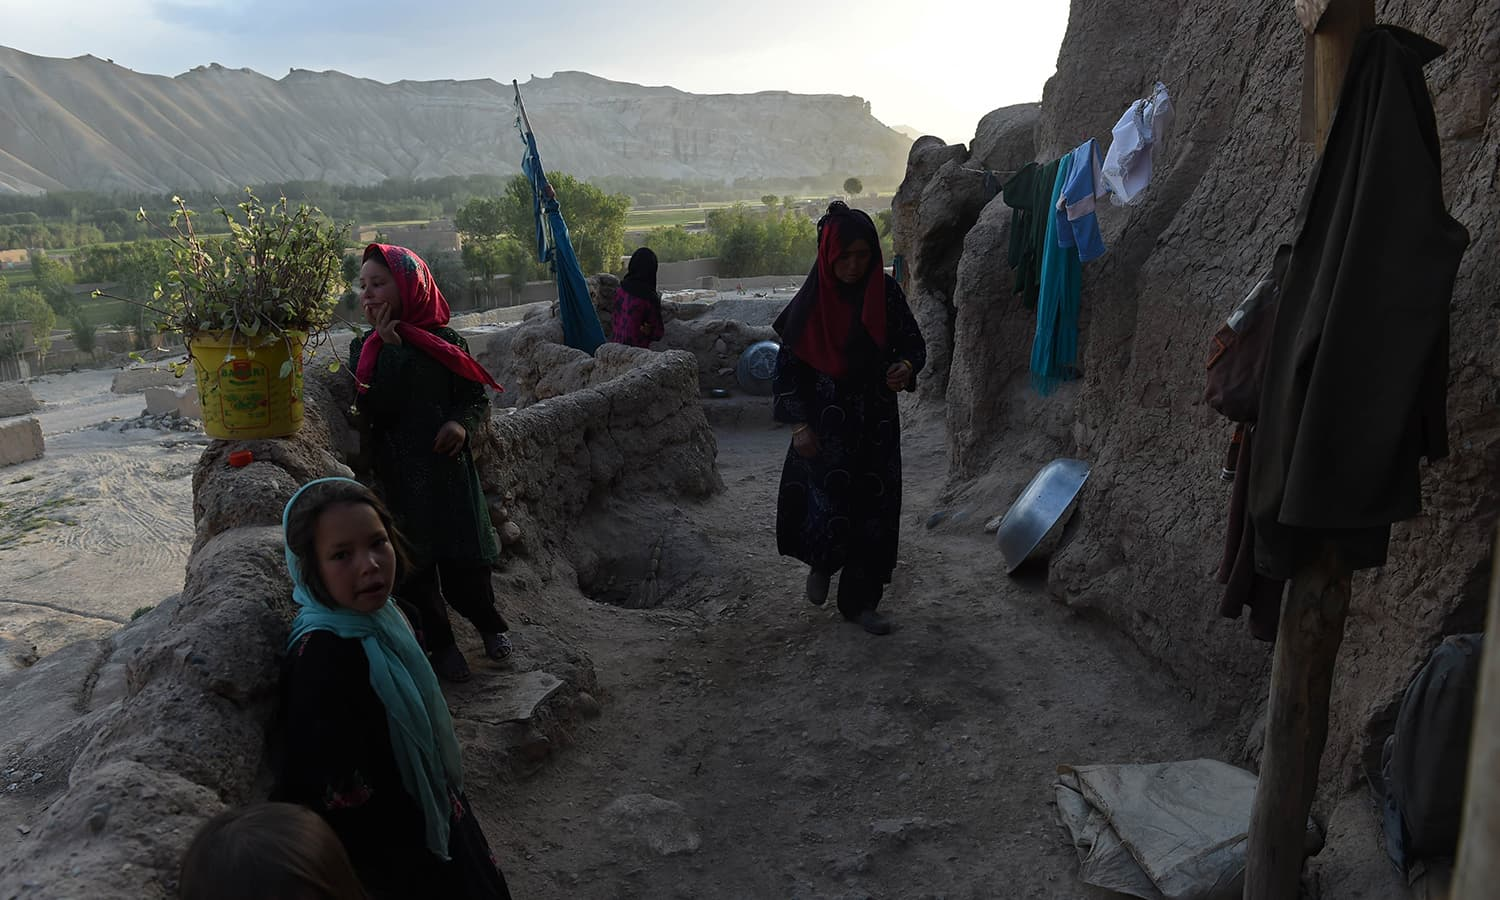 In this photograph taken on June 19, 2015, a Hazara Afghan family stands by the entrance to their cave in the old city of Bamiyan, some 200 kilometres (124 miles) northwest of Kabul. ─ AFP